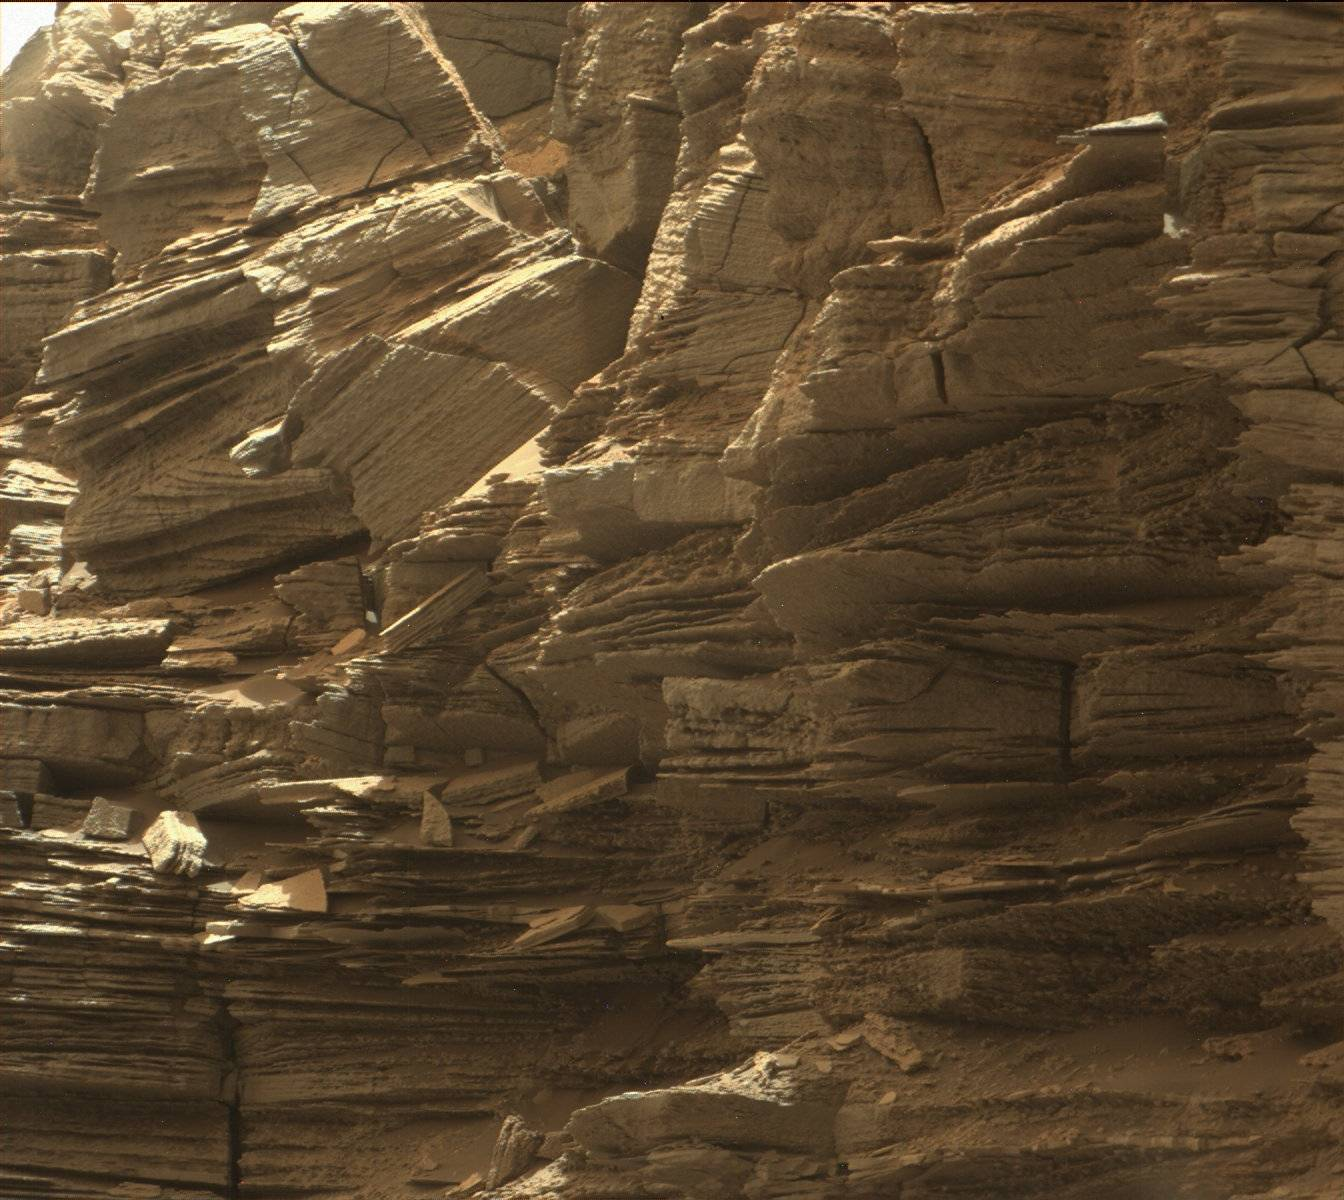 A close-up look at the breathtaking clarity of the Stinson Formation.  Thin layers of rock, displayed for all to see, a cross-section of geological history.